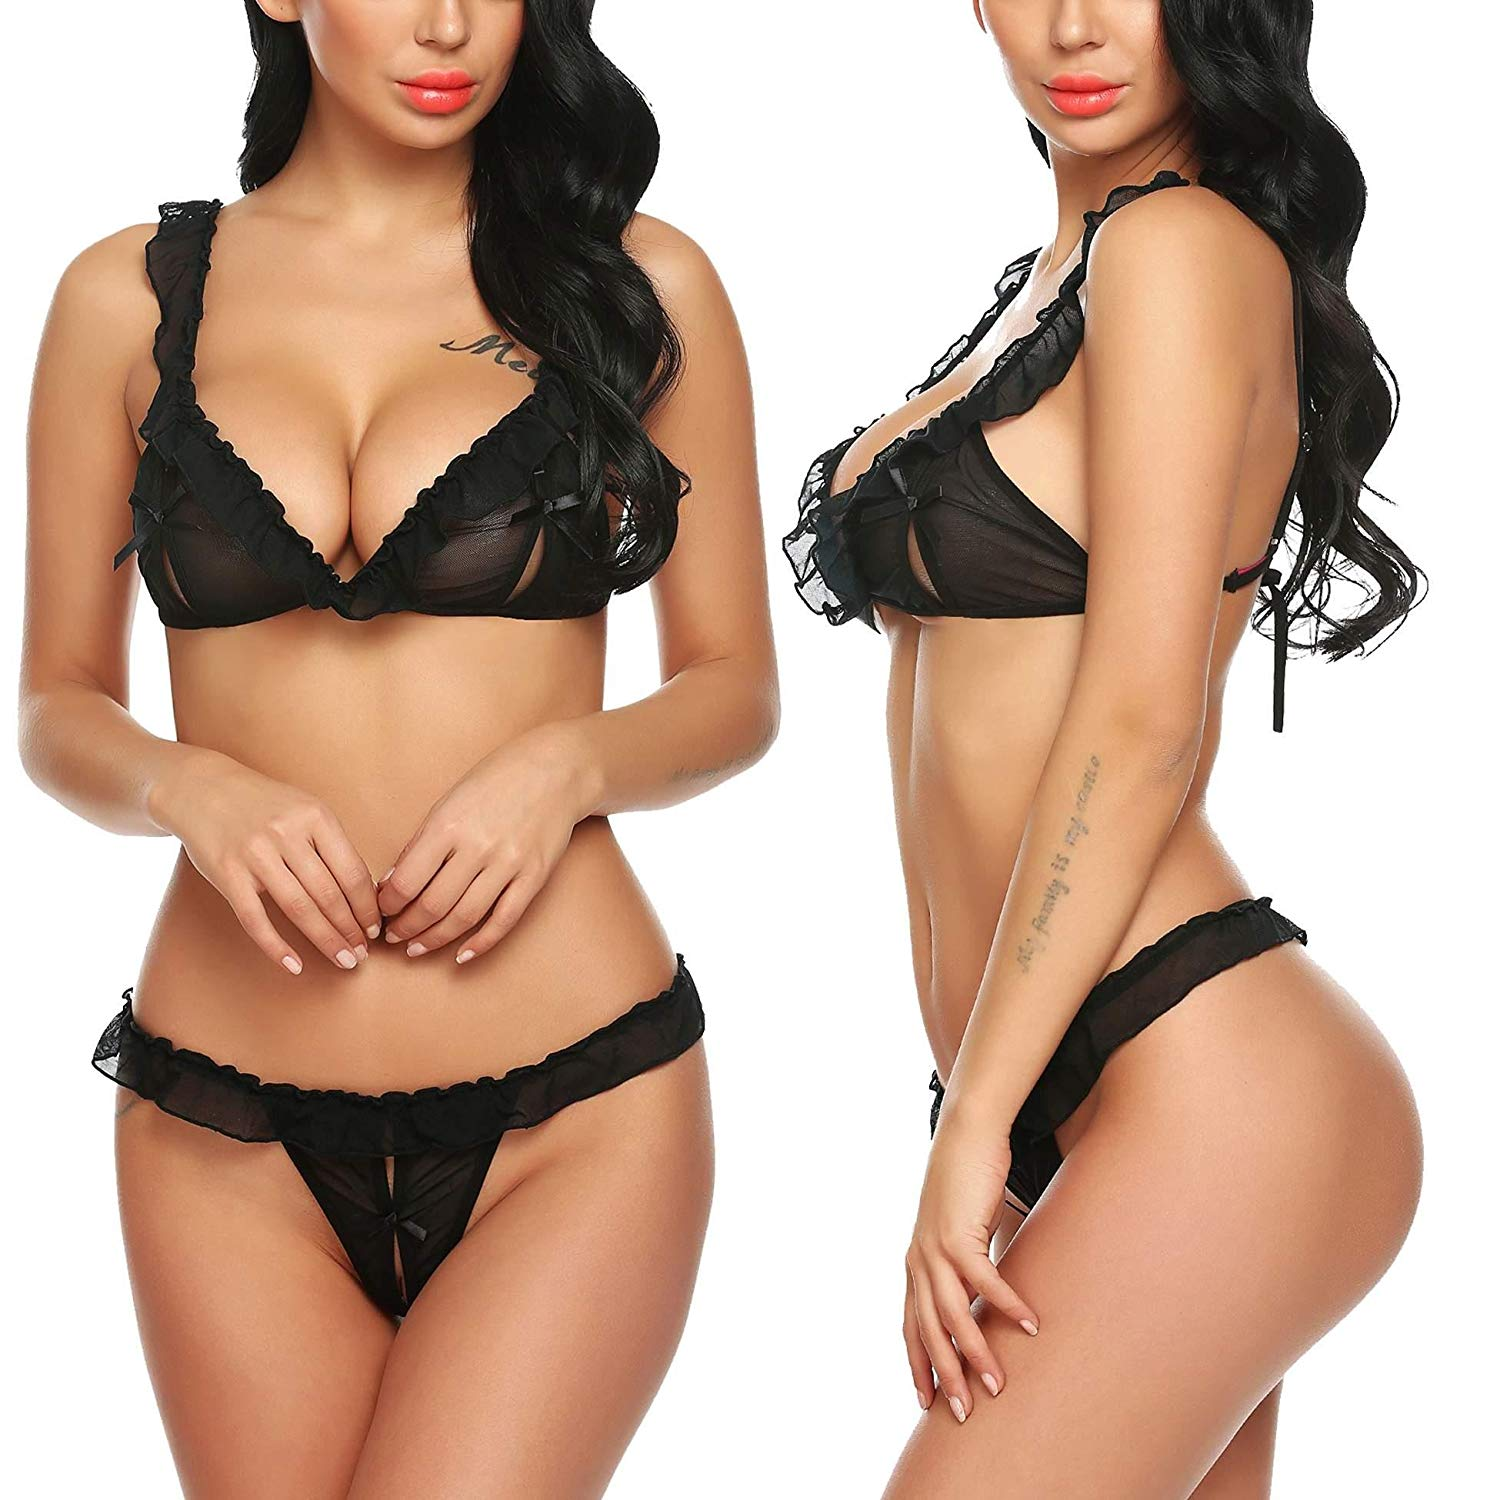 75a9a7a5a1 Get Quotations · Avid love Women Strappy Lace Teddy Lingerie 2 Piece Halter Babydoll  Bodysuit (Black